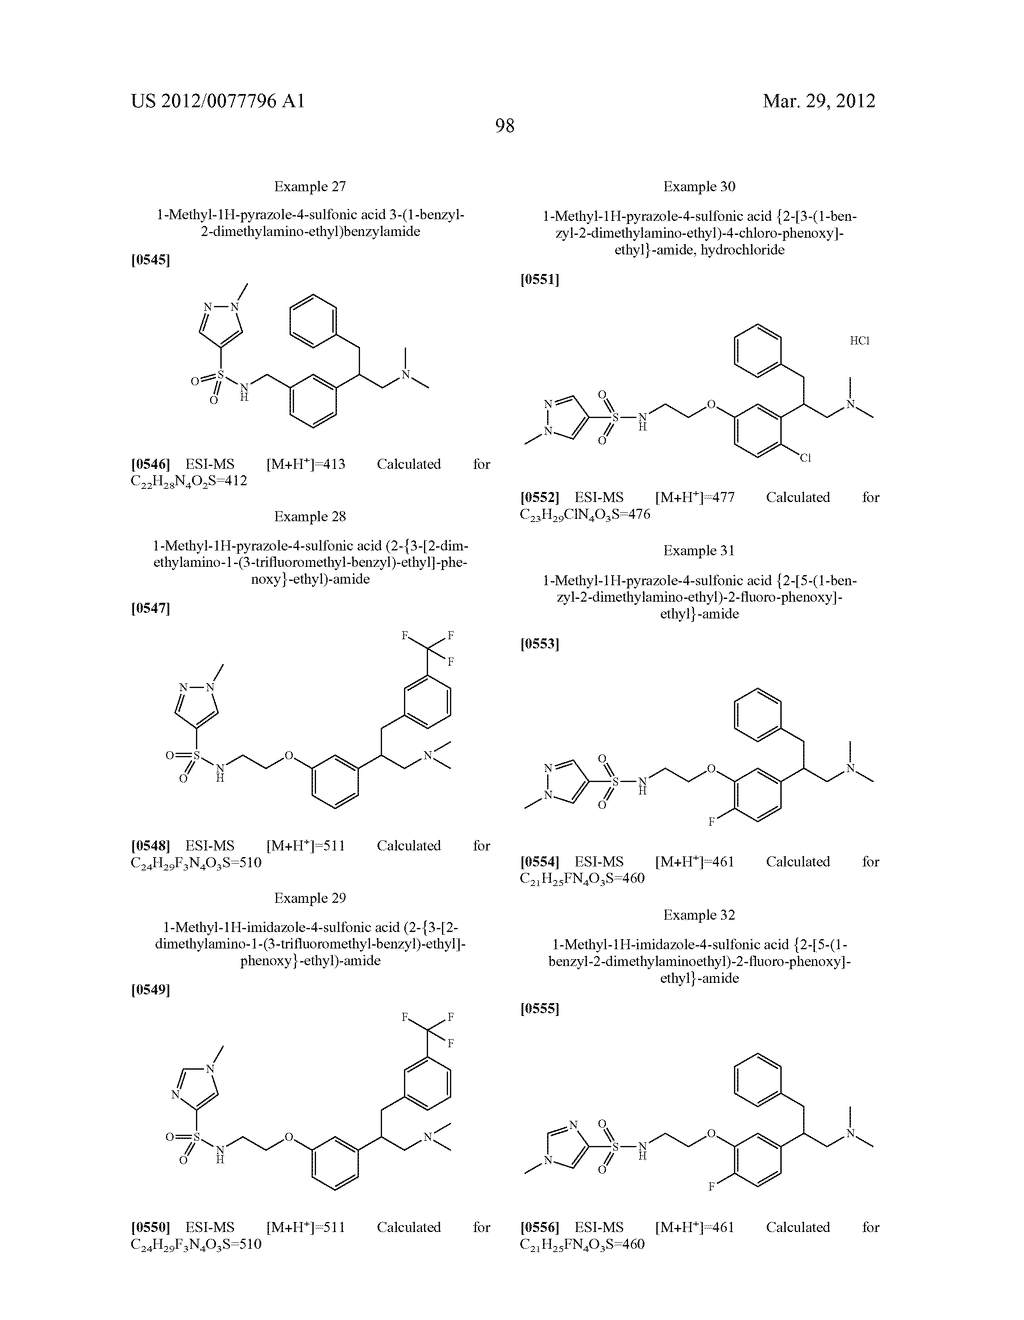 PHENALKYLAMINE DERIVATIVES, PHARMACEUTICAL COMPOSITIONS CONTAINING THEM,     AND THEIR USE IN THERAPY - diagram, schematic, and image 99